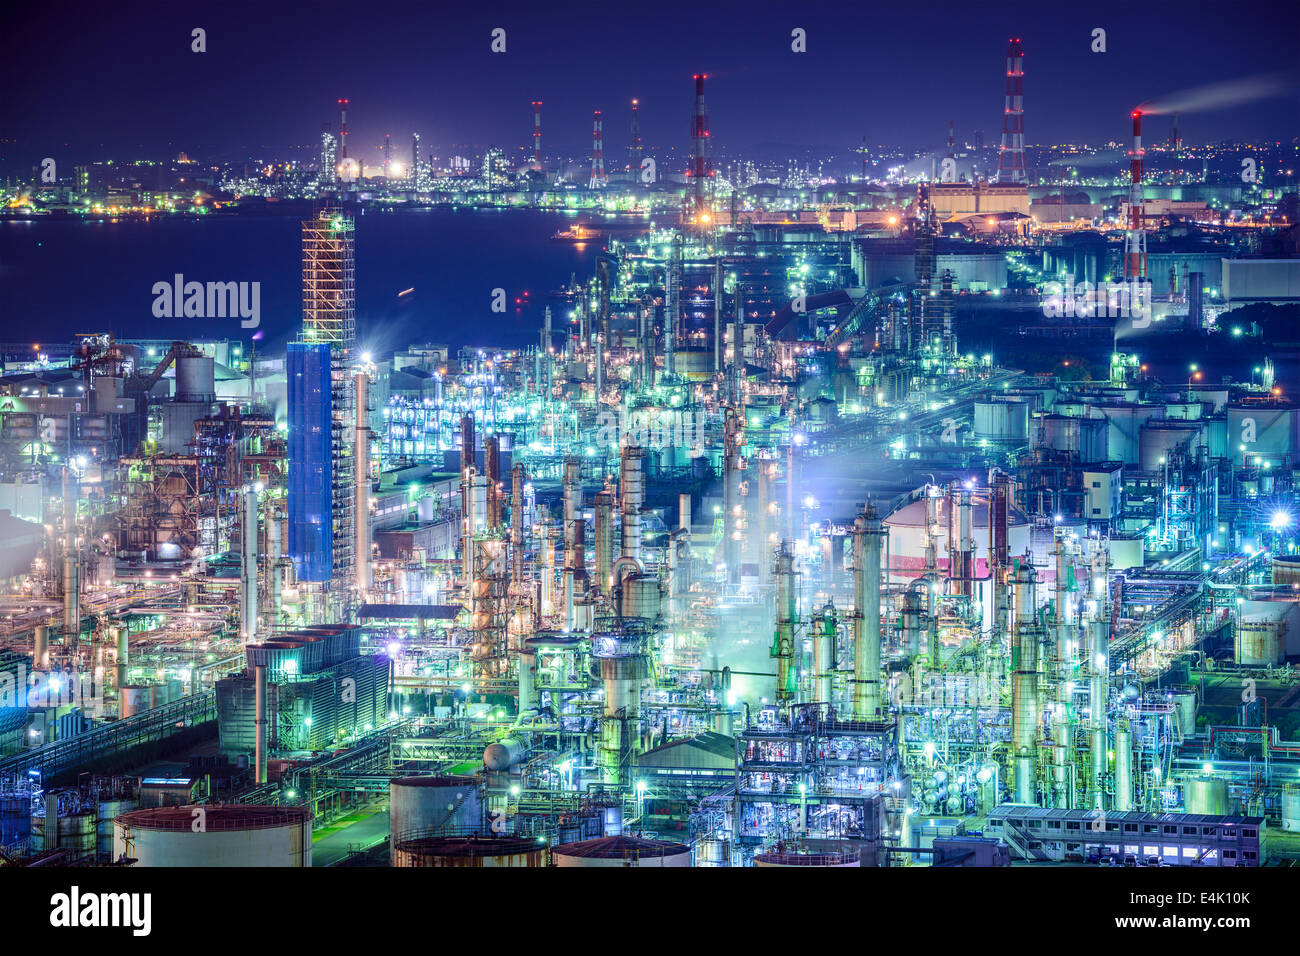 Industrial skyline in Yokkaichi, Japan. - Stock Image